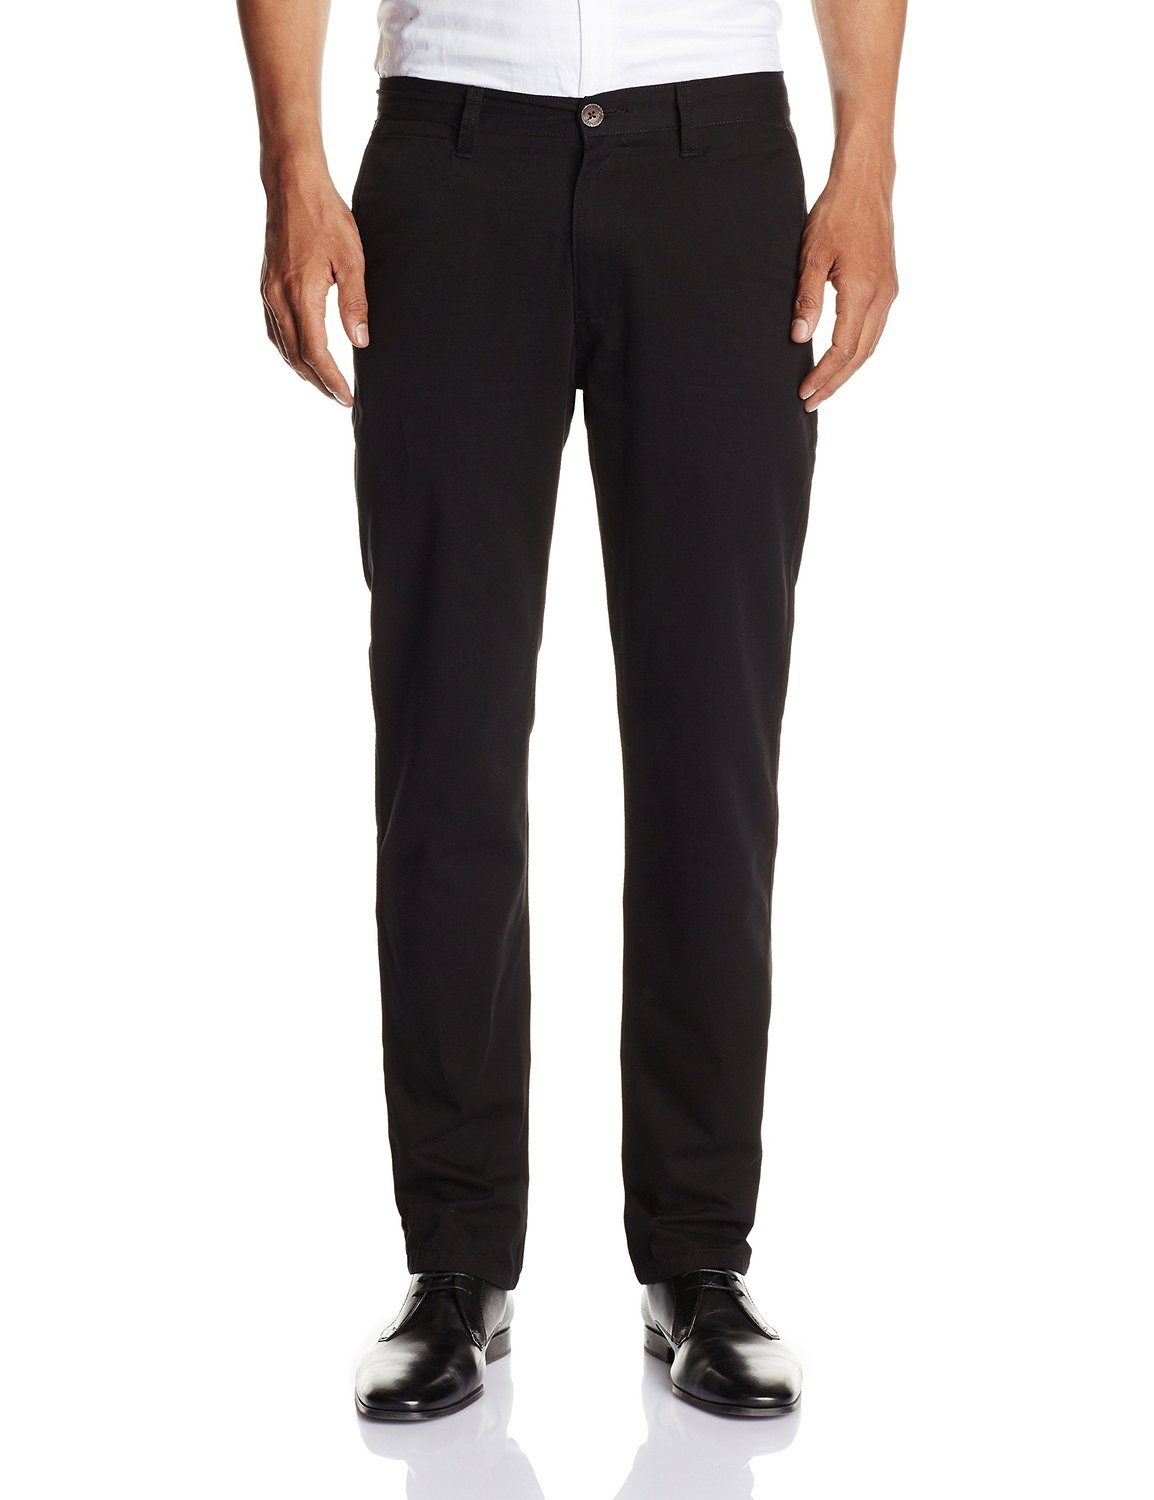 Highlander Men's Slim Fit Trouser